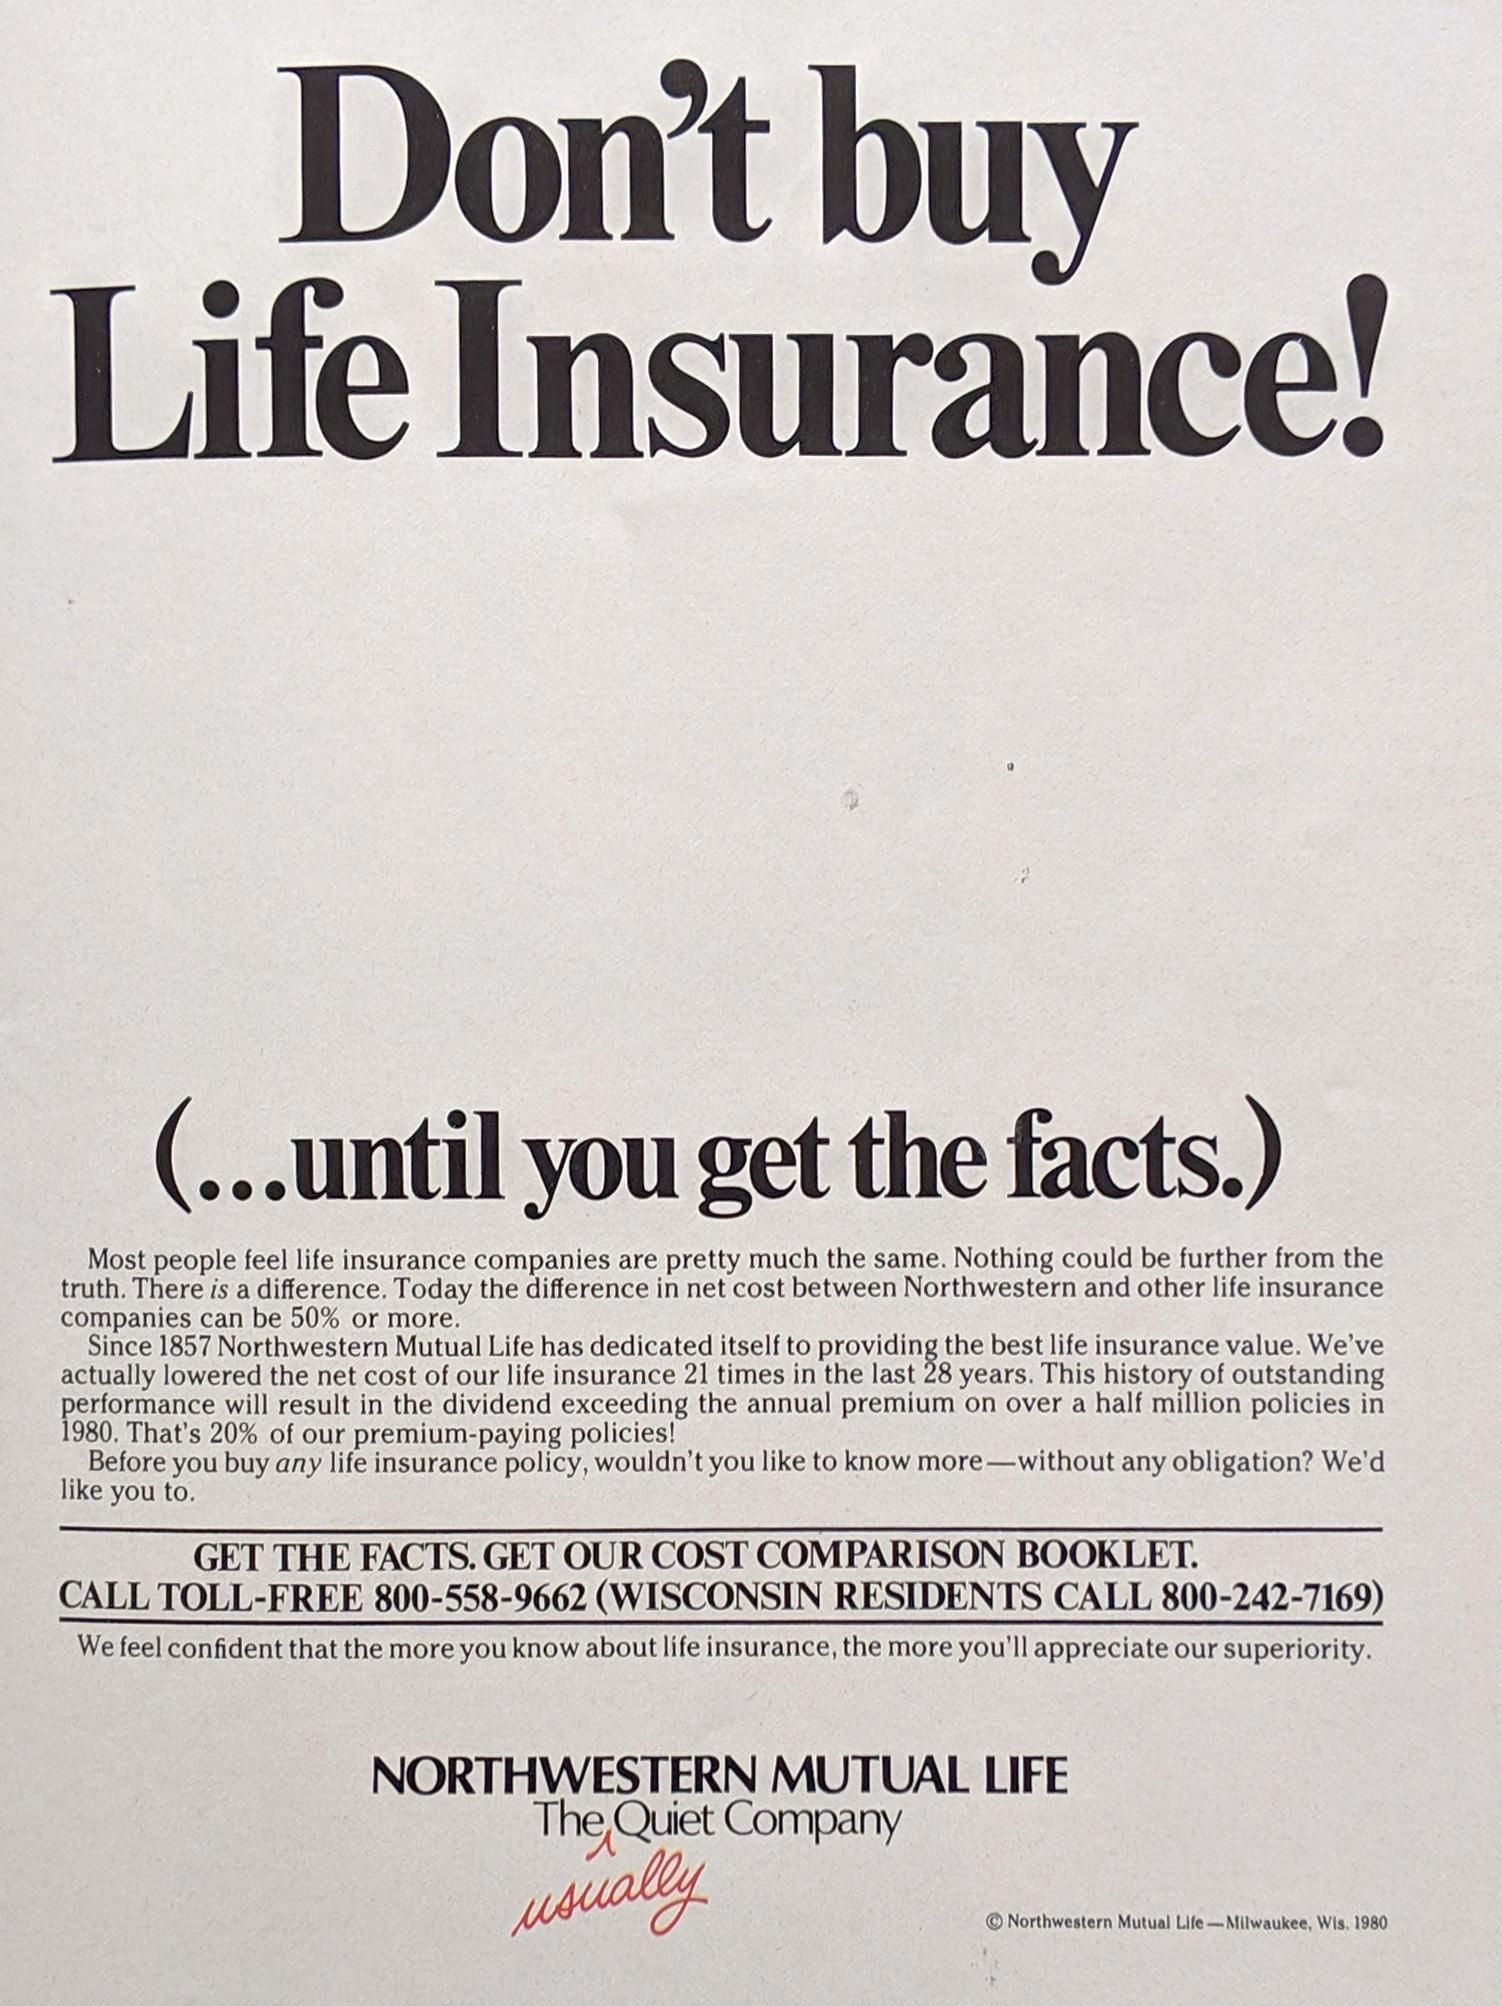 Don T Buy Life Insurance 1980 Vintageads Ads Vintage Printad Tvads Advertising Brandscience I Life Insurance Companies Life Insurance Insurance Ads